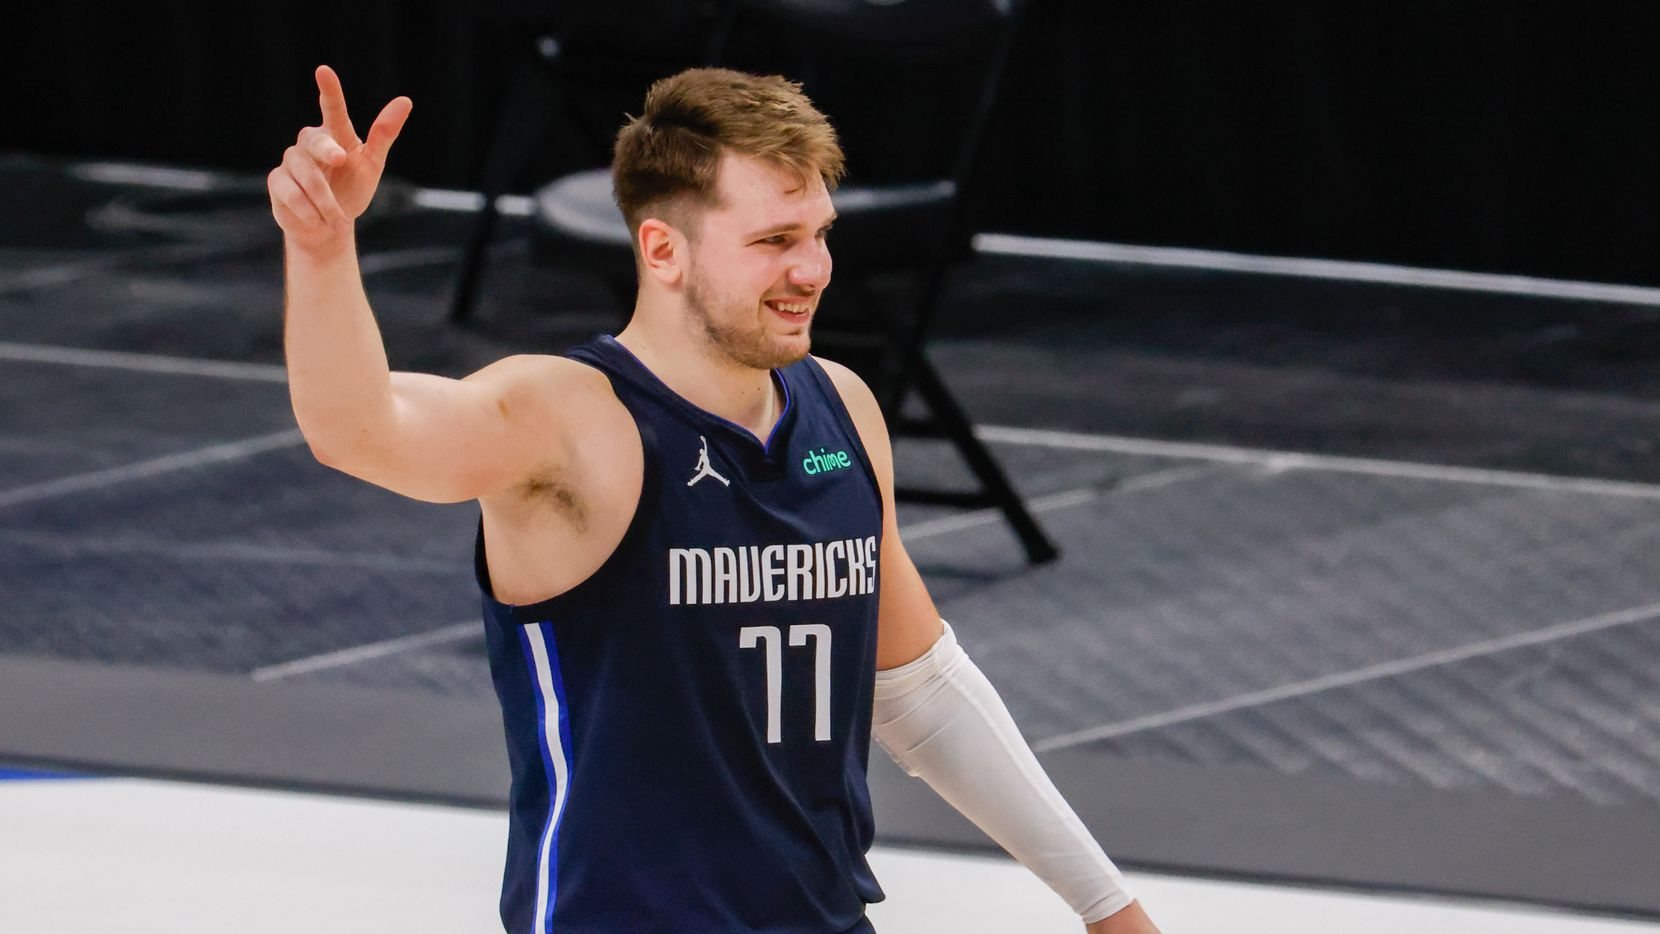 Dallas Mavericks guard Luka Doncic (77) smiles after defeating the Los Angeles Lakers at the American Airlines Center on Saturday, April 24, 2021, in Dallas.